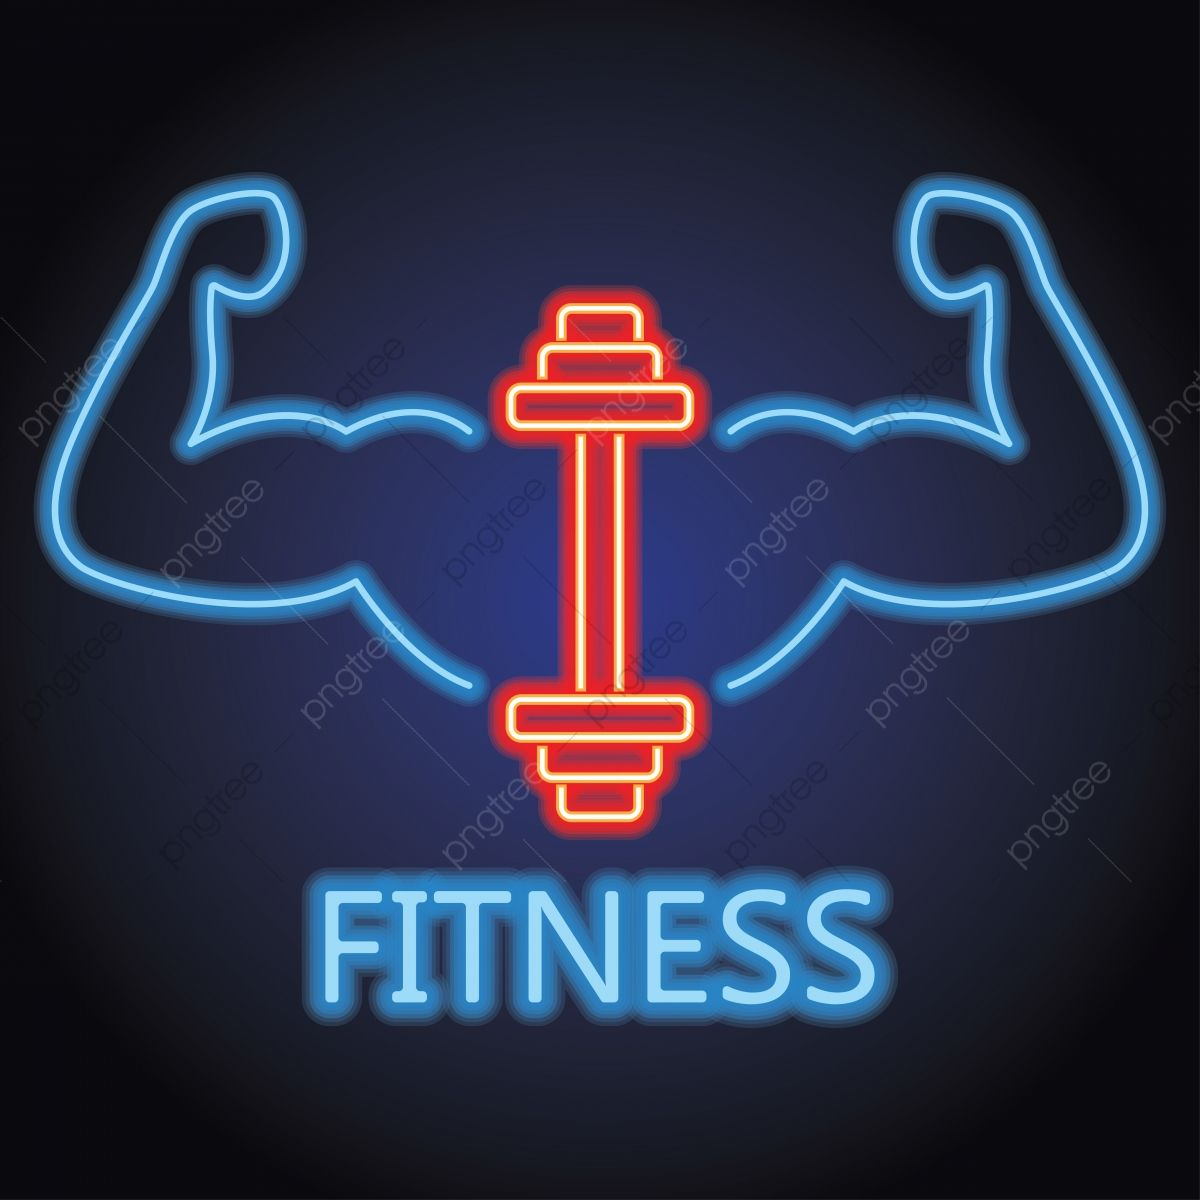 Fitness Gym Center Logo With Neon Light Effect Vector